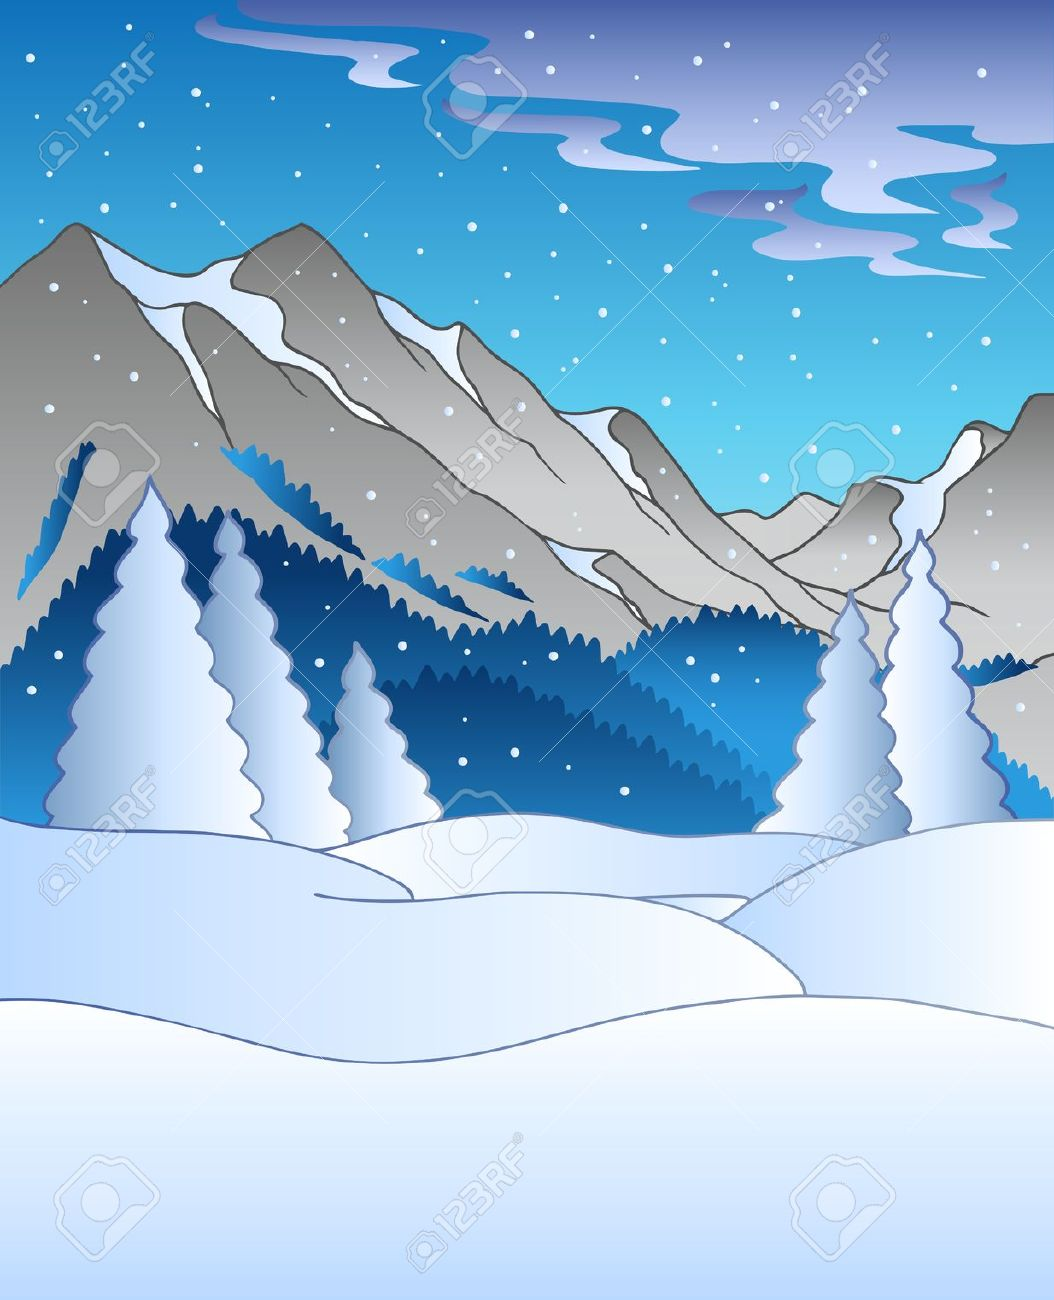 Drawn landscape Clipart – Winter Art Download